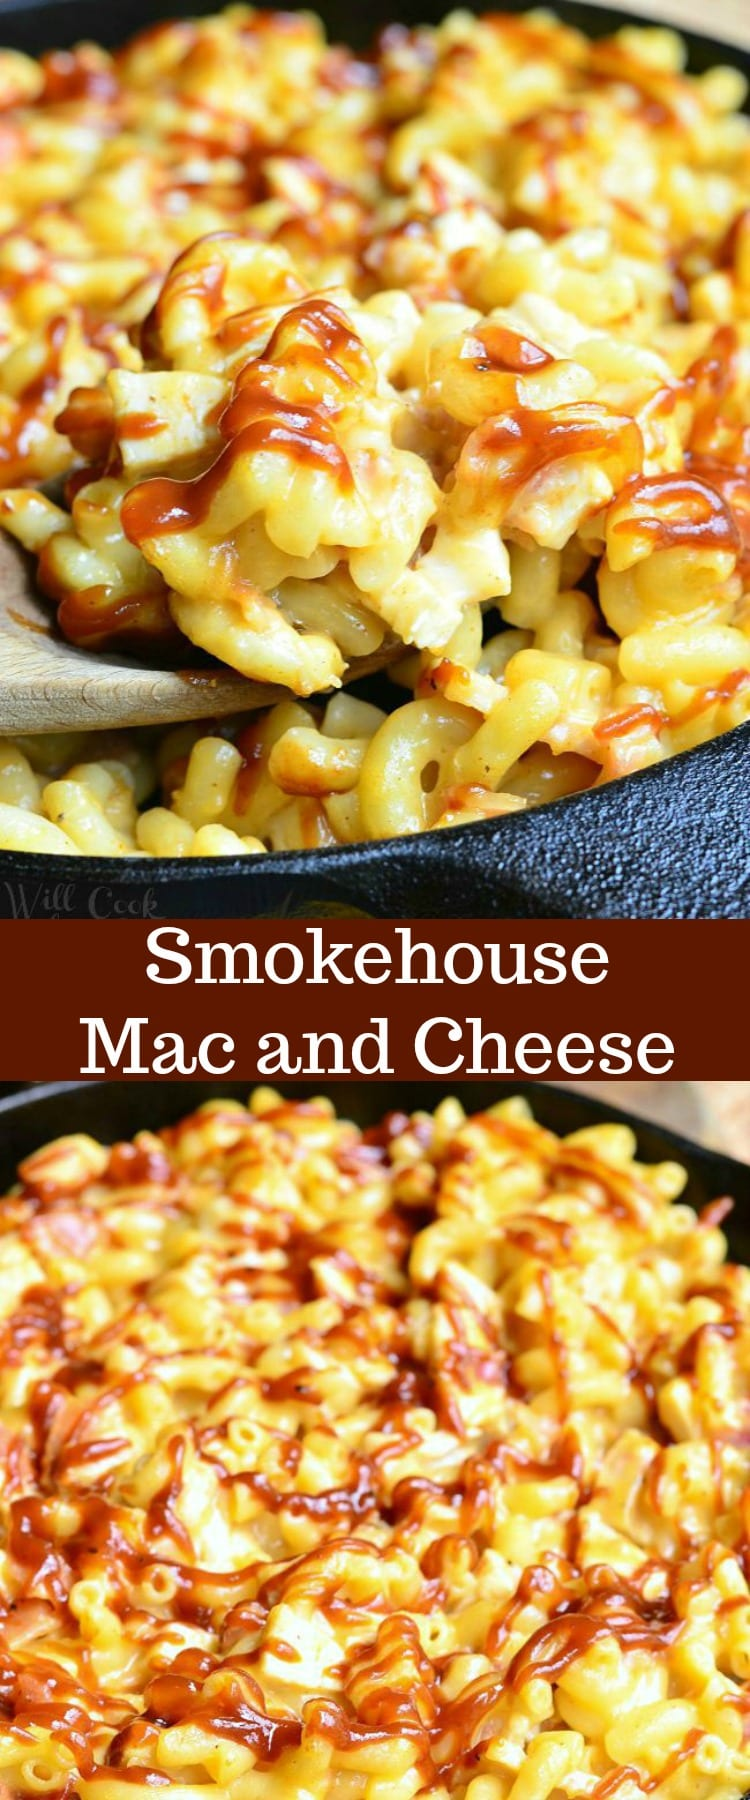 Smokehouse Mac and Cheese. Amazing, comforting macaroni and cheese dish. Macaroni loadedwith chicken, smoked bacon and smoked cheese, baked and drizzled in bbq sauce. #pasta #macaroni #cheesy #bbq #macandcheese #bacon #chicken